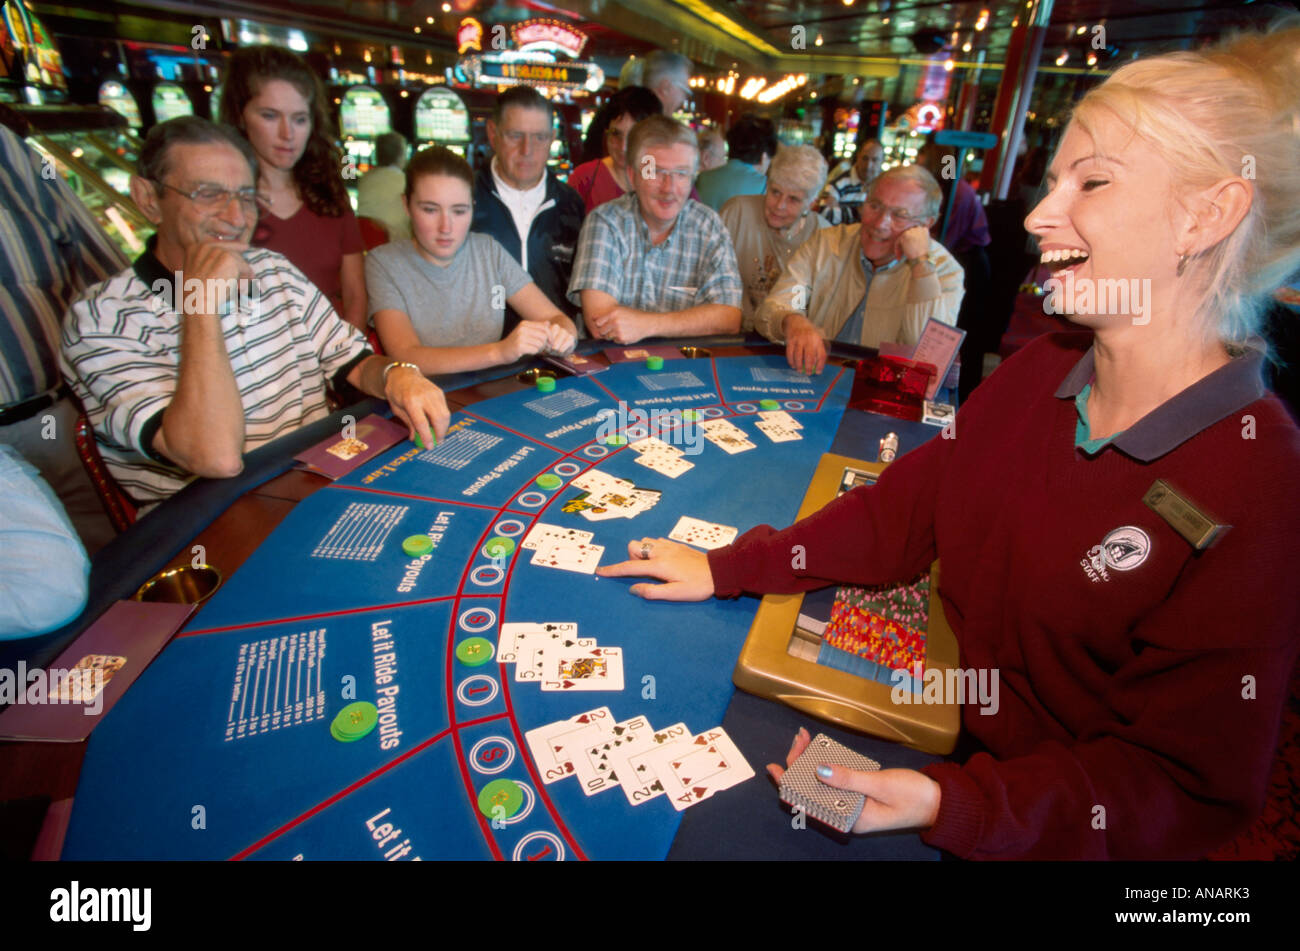 Casino croupier job marlow casino